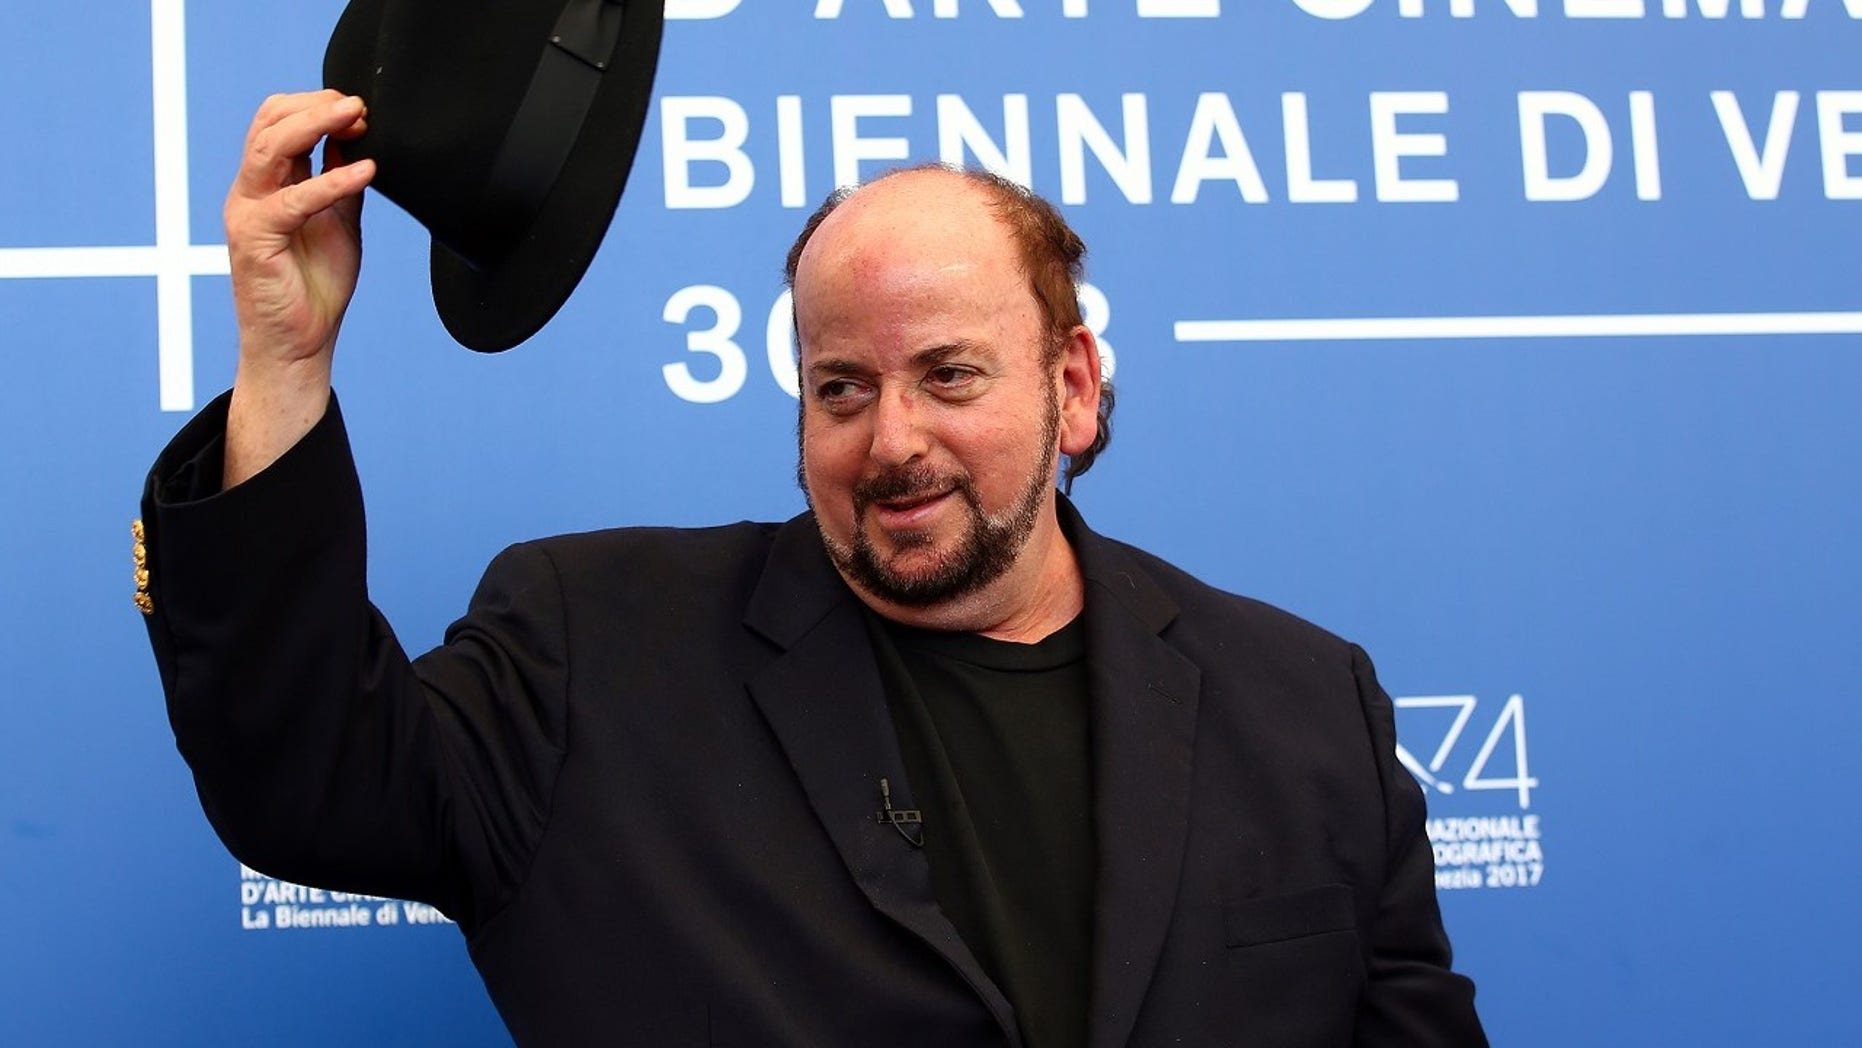 Director James Toback denied he sexually harassed 38 women after a Los Angeles Times report on Sunday detailed the encounters.